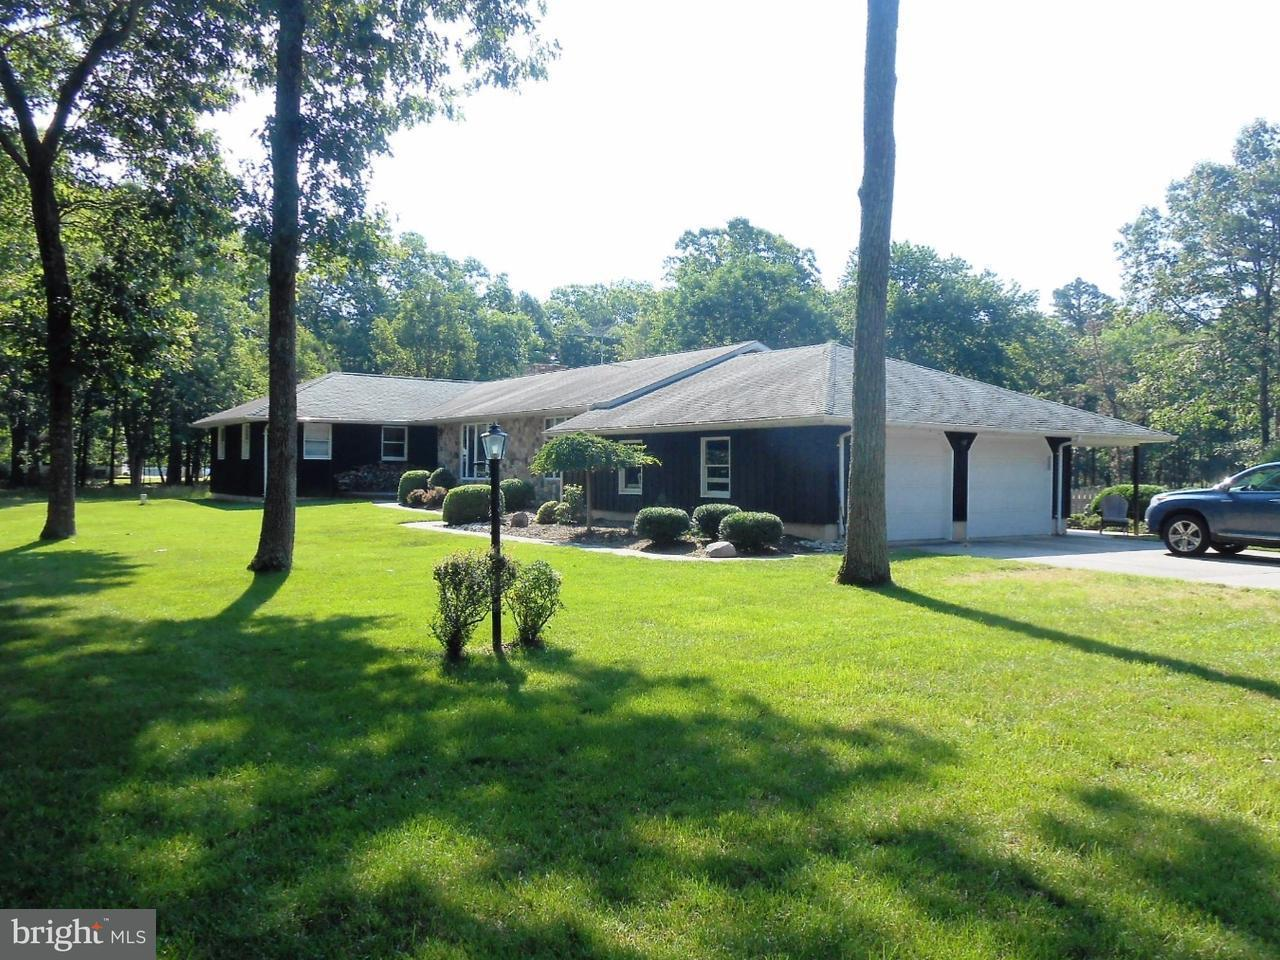 Single Family Home for Rent at 127 POWELL PLACE Road Tabernacle, New Jersey 08088 United States